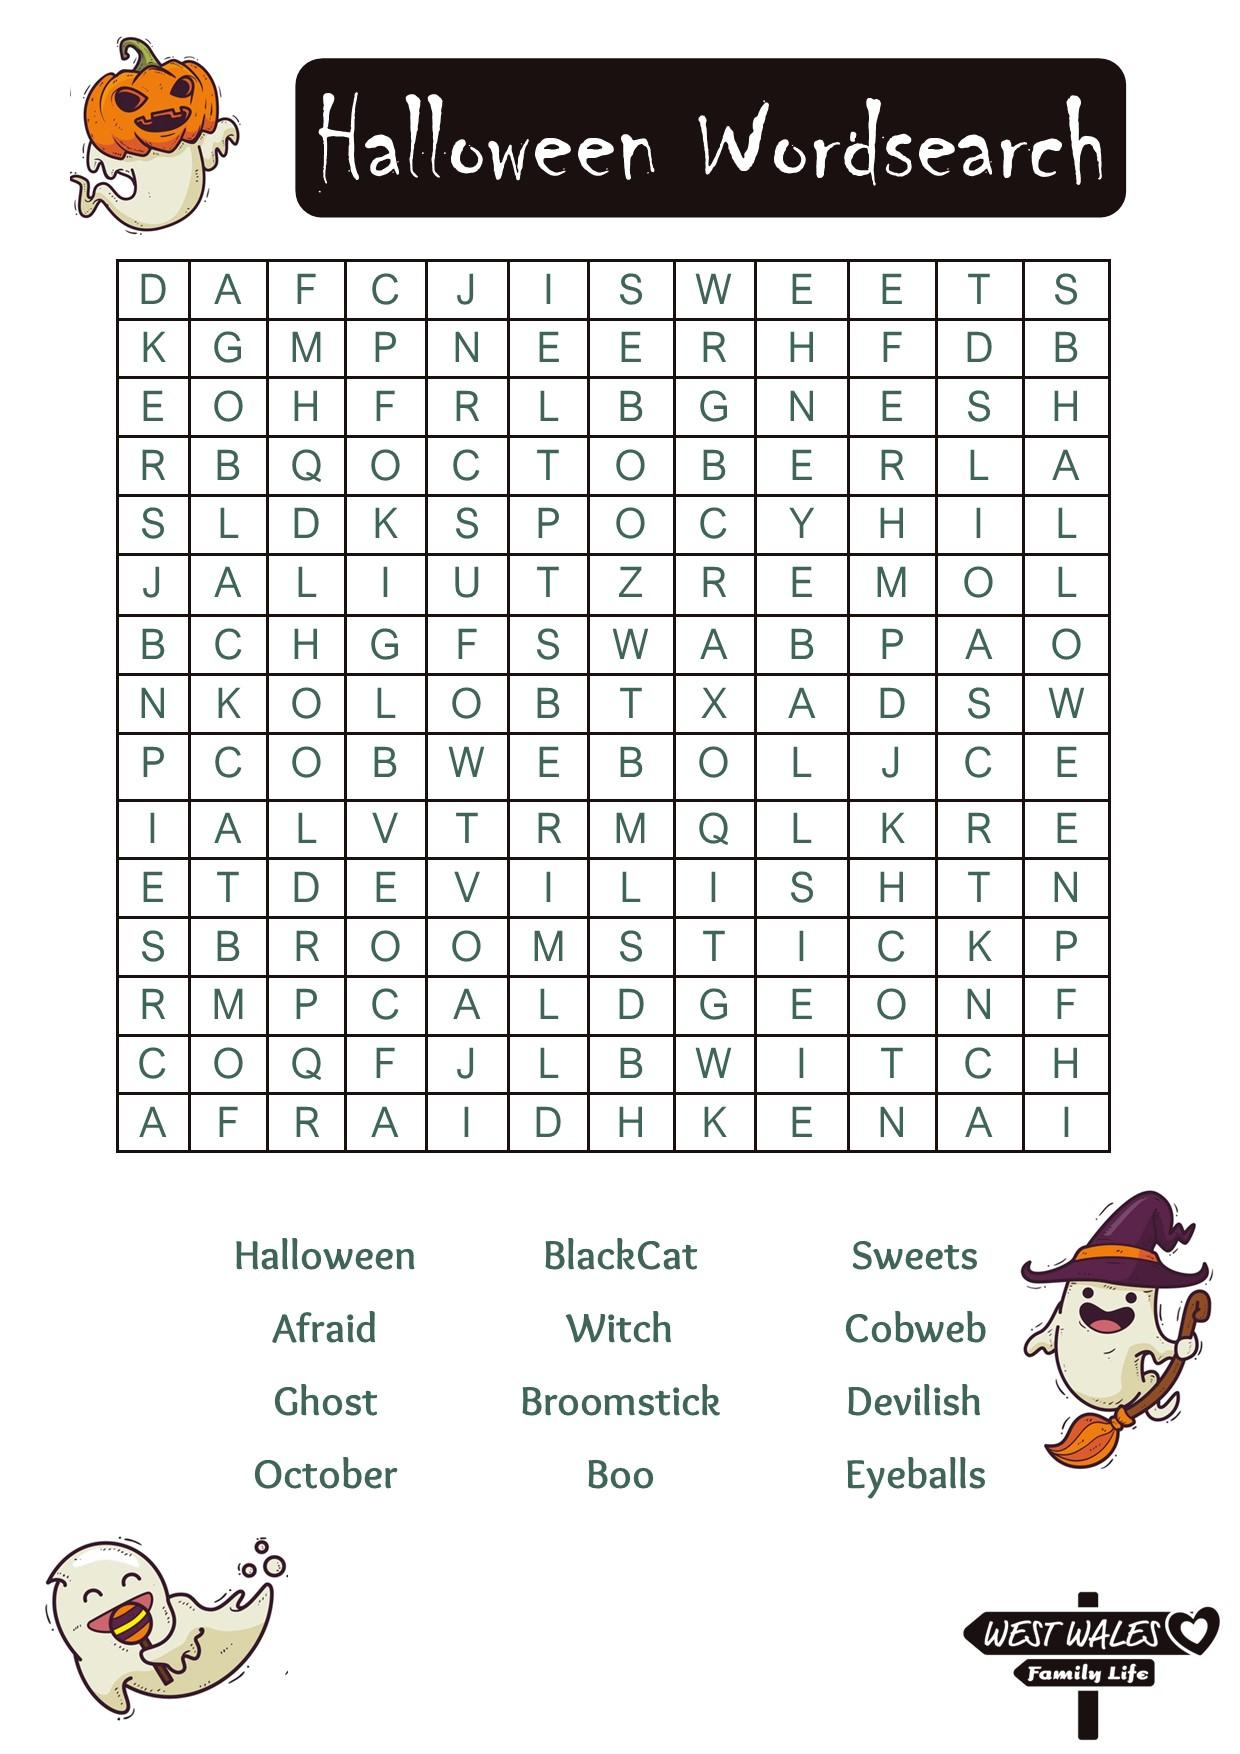 Halloween Wordsearch 1